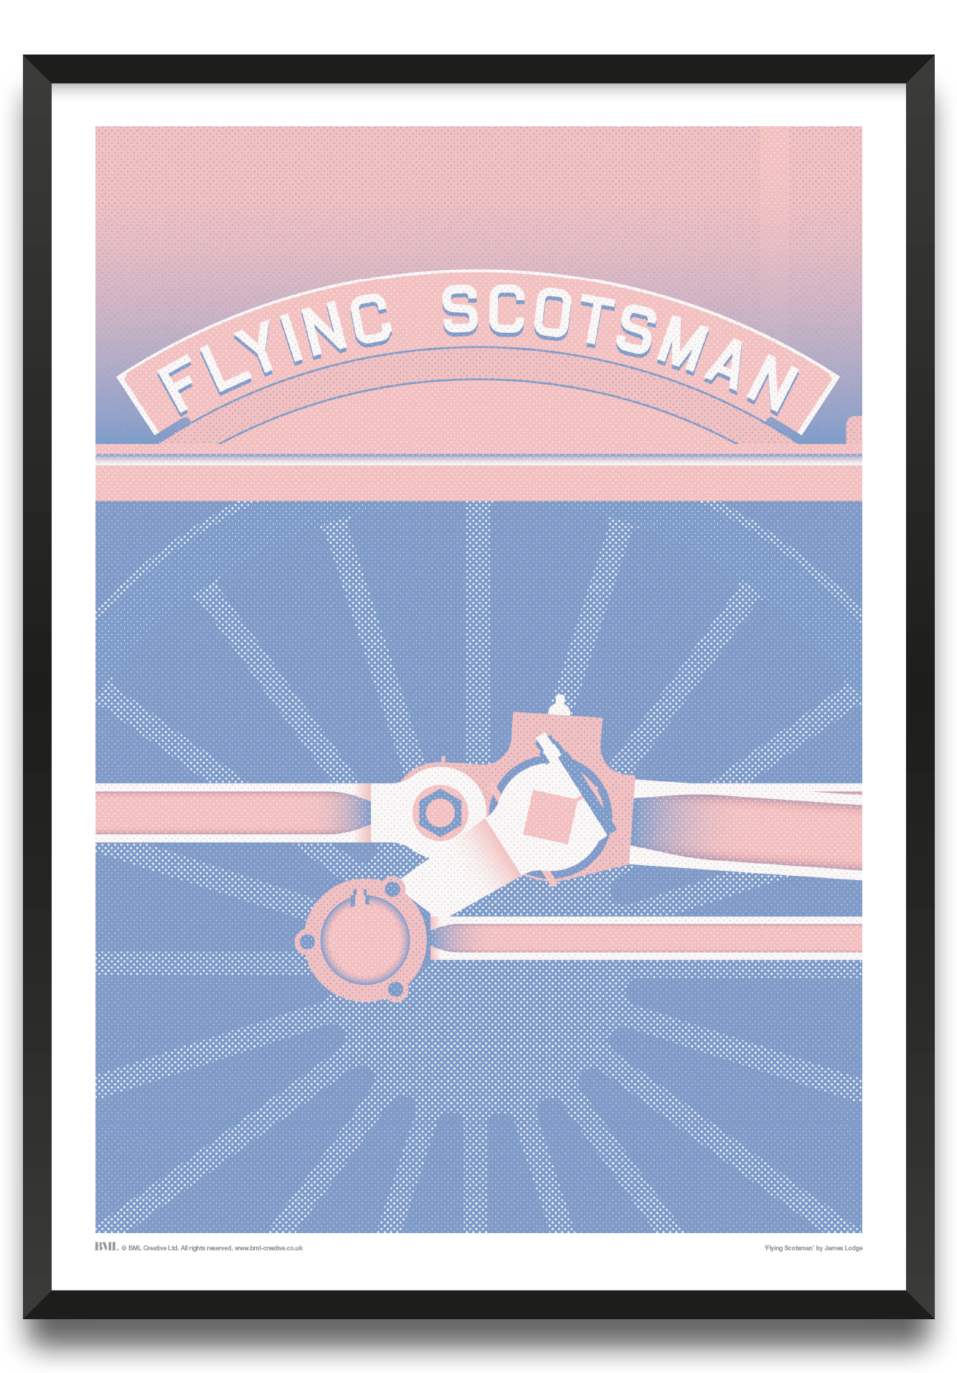 Flying Scotsman, train art print by James Lodge, Prints for Charity